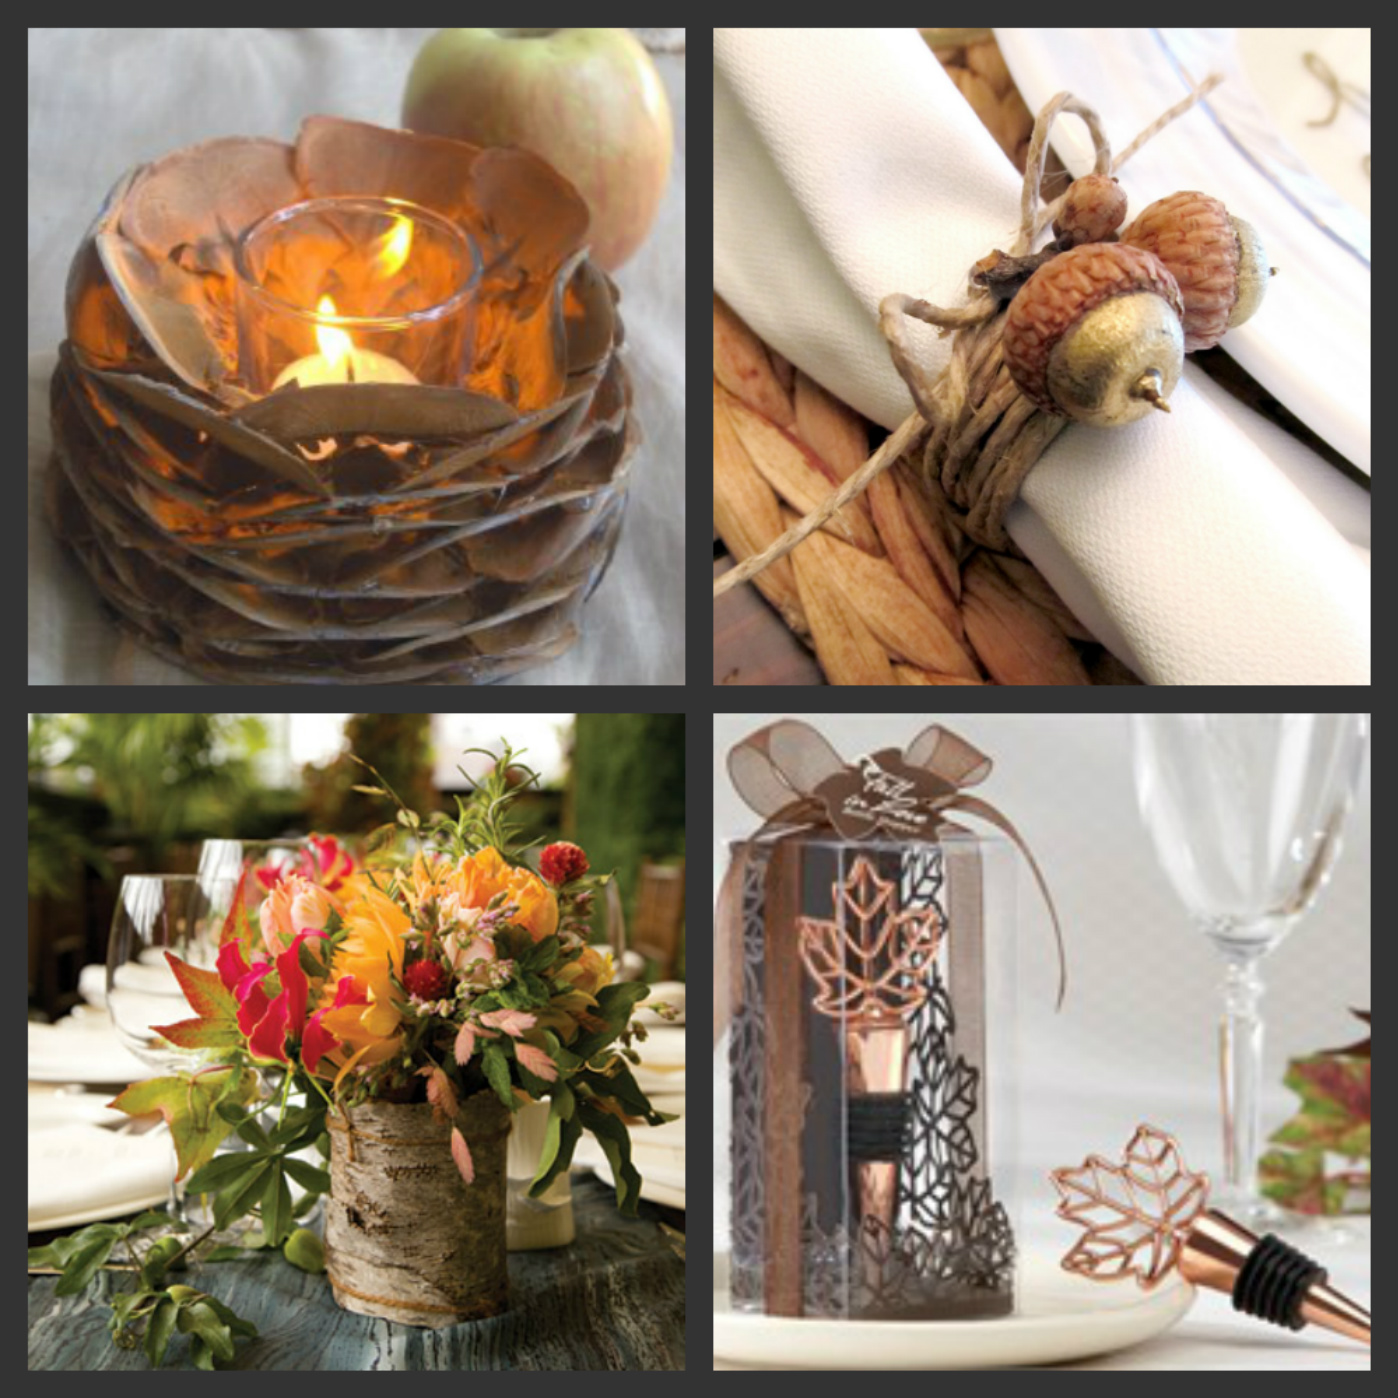 Weddings are fun blog diy autumn wedding tables decorations using weddings are fun blog diy autumn wedding tables decorations using items from your yard solutioingenieria Images